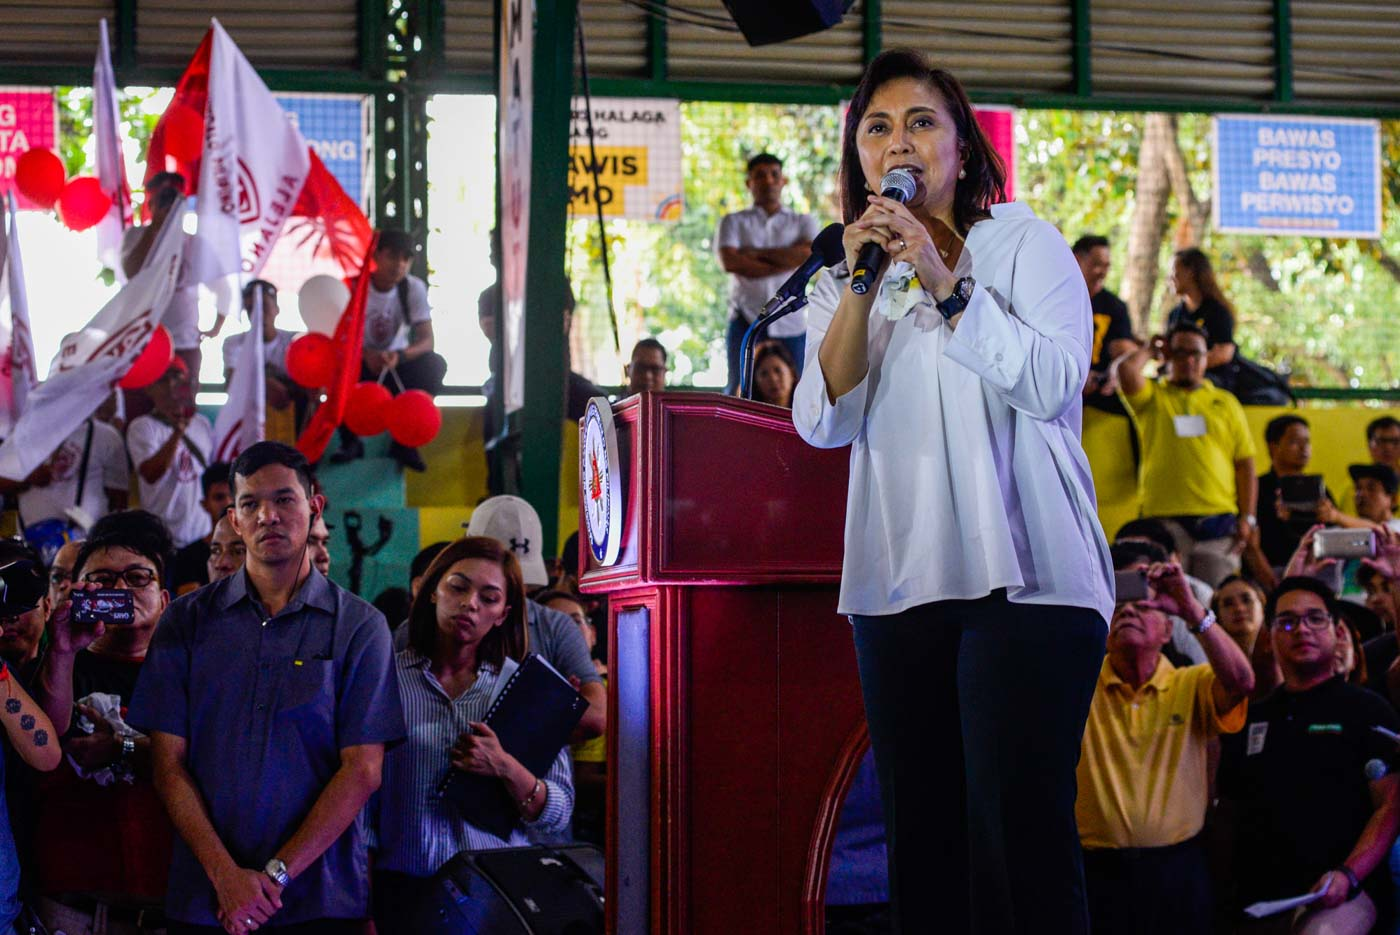 OPPOSITION COALITION. Vice President Leni Robredo delivers the closing speech during the presentation of the Opposition Coalition's senatorial slate. Photo by Maria Tan/Rappler